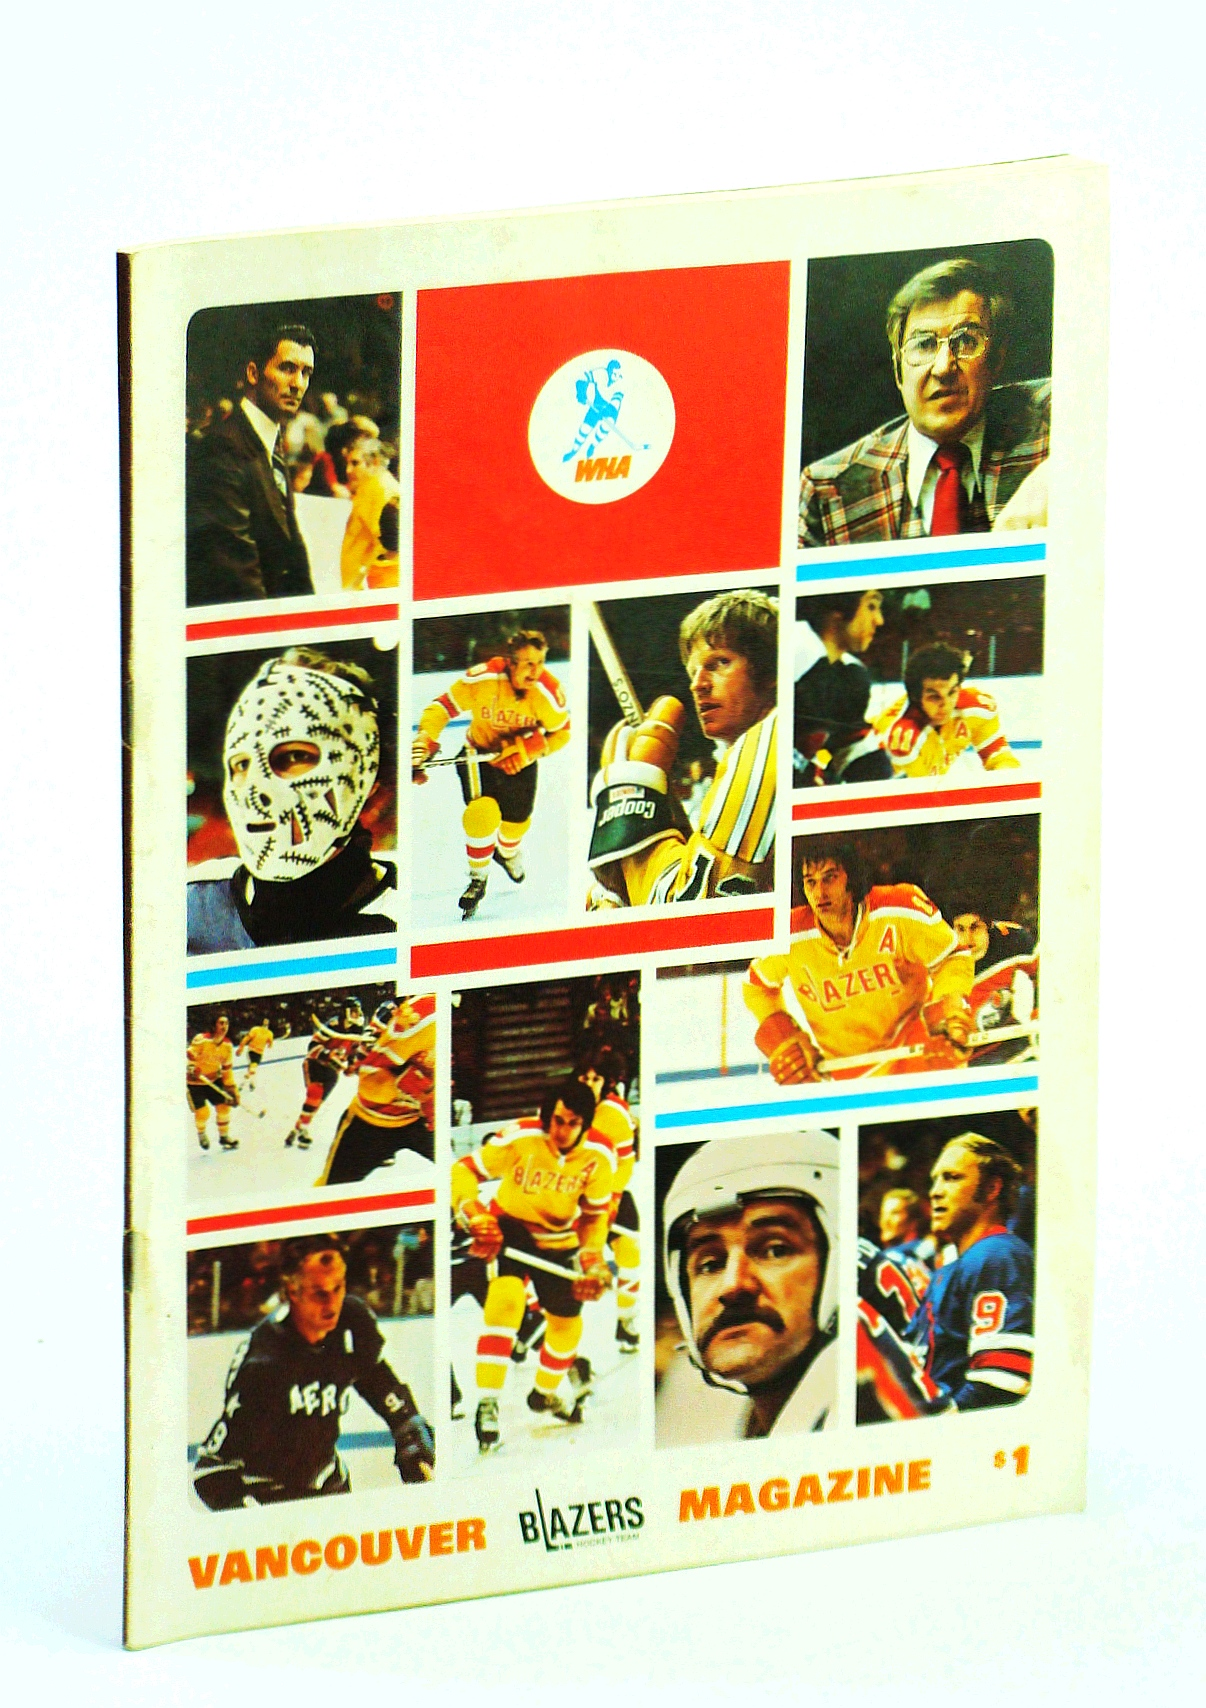 Image for Vancouver Blazers Magazine, Volume II, Issue No. 4, October 20, 1974: Chicago Cougars Visit Vancouver